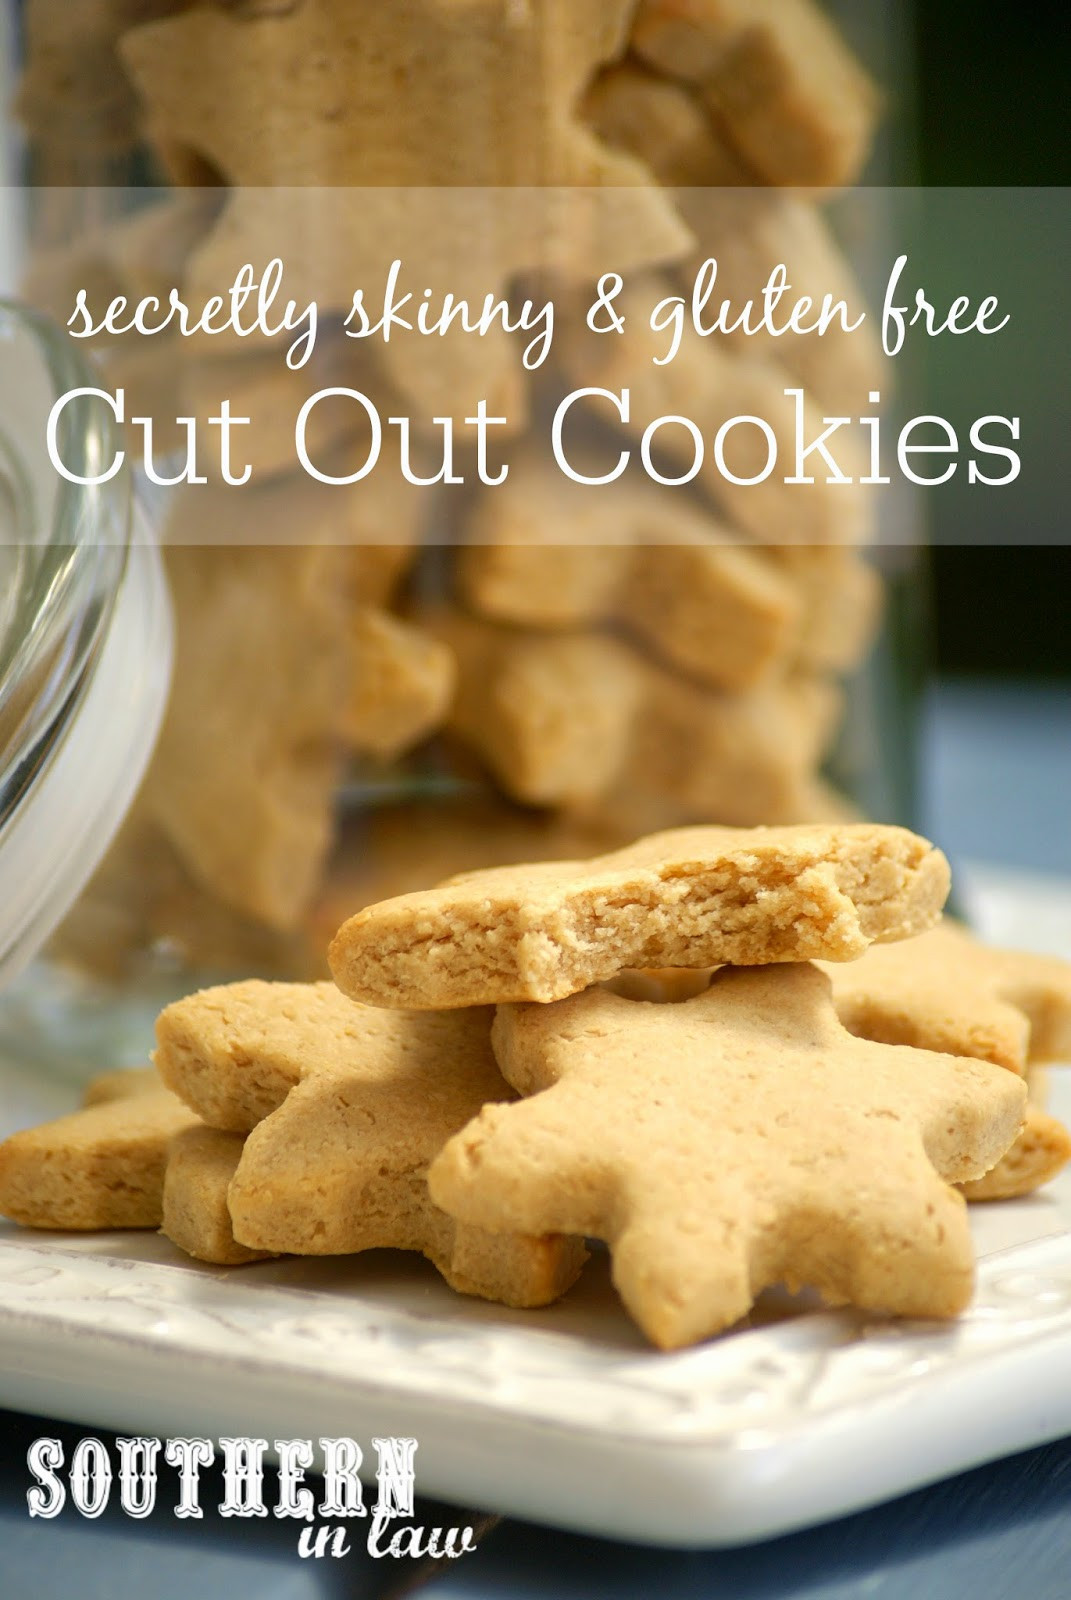 Low Calorie Christmas Cookies  Southern In Law Recipe Healthier Cut Out Cookies